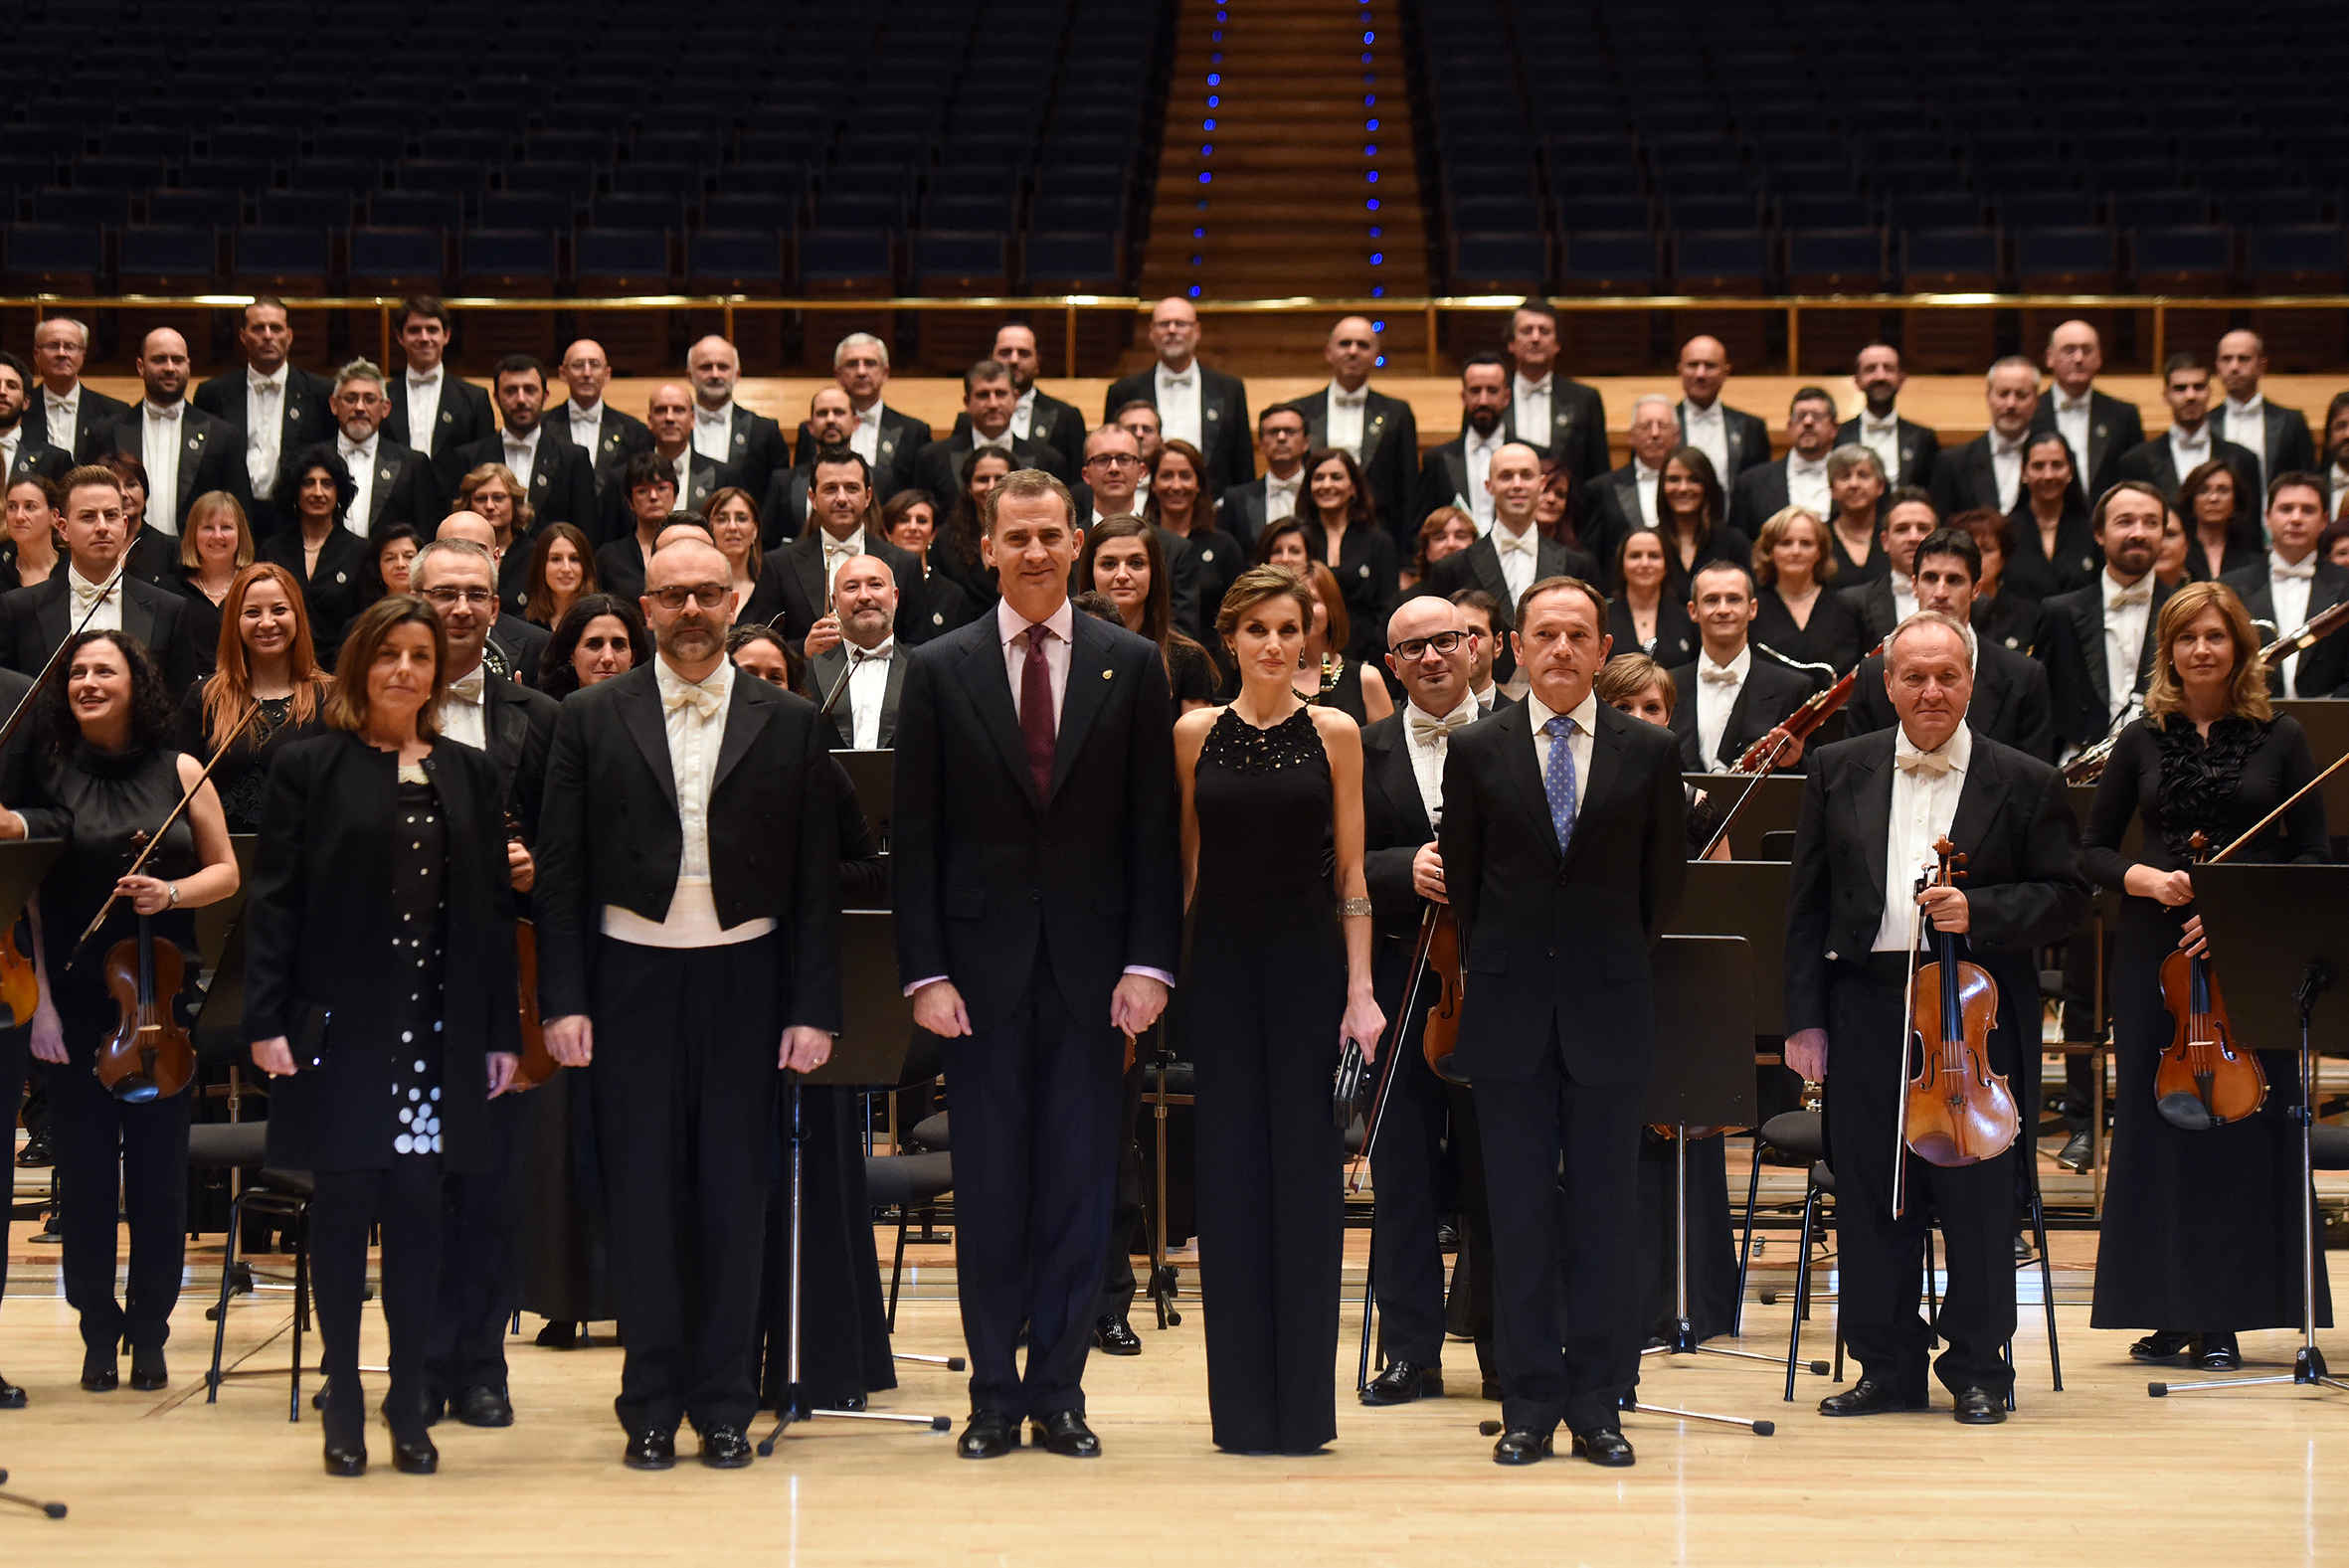 XXIV Princess of Asturias Awards Concert